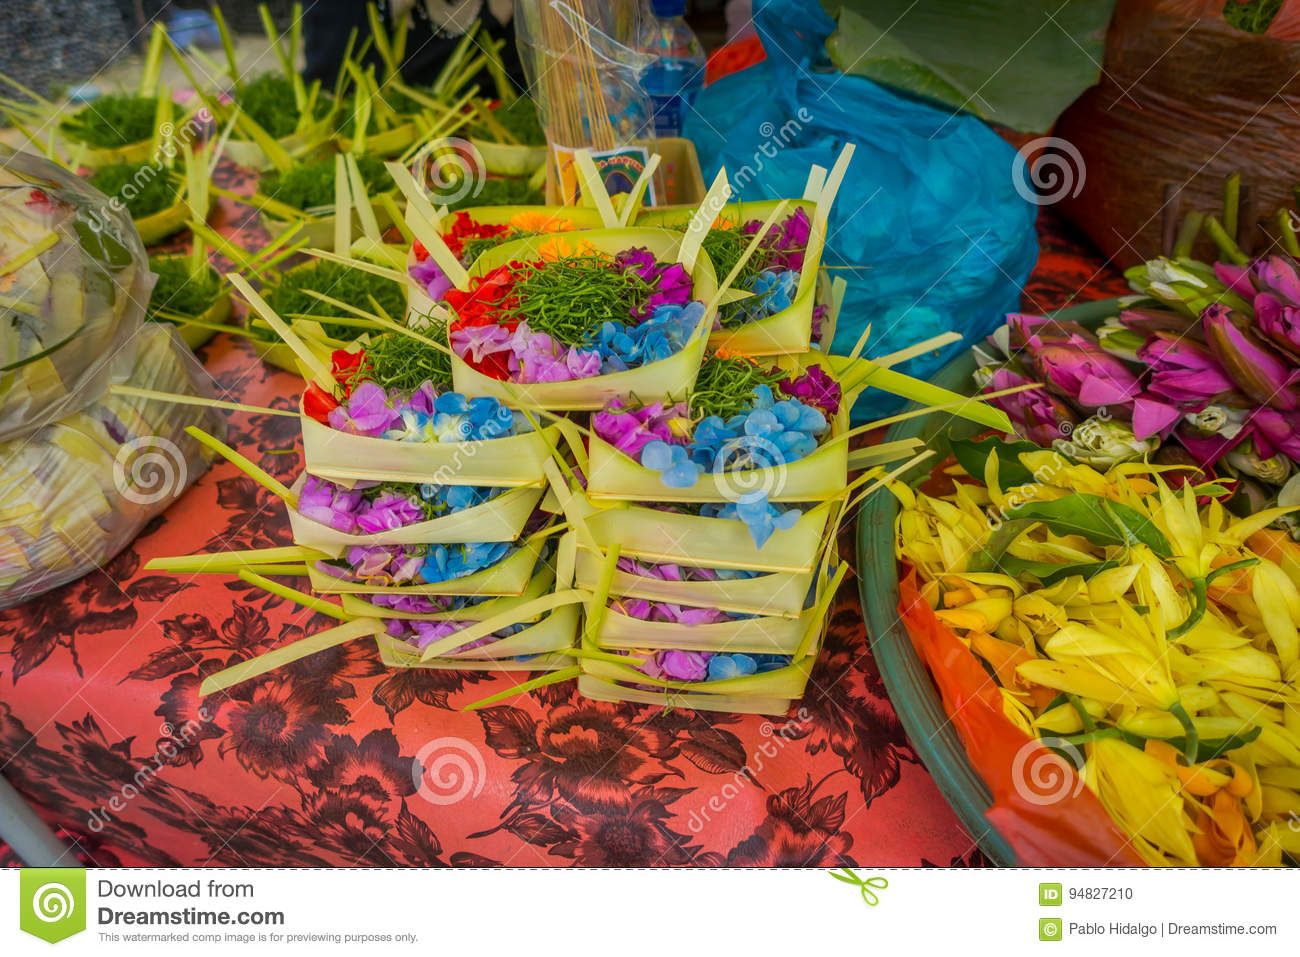 A market with a box made of leafs, inside an arrangement of flowers on a table, in the city of Denpasar in Indonesia